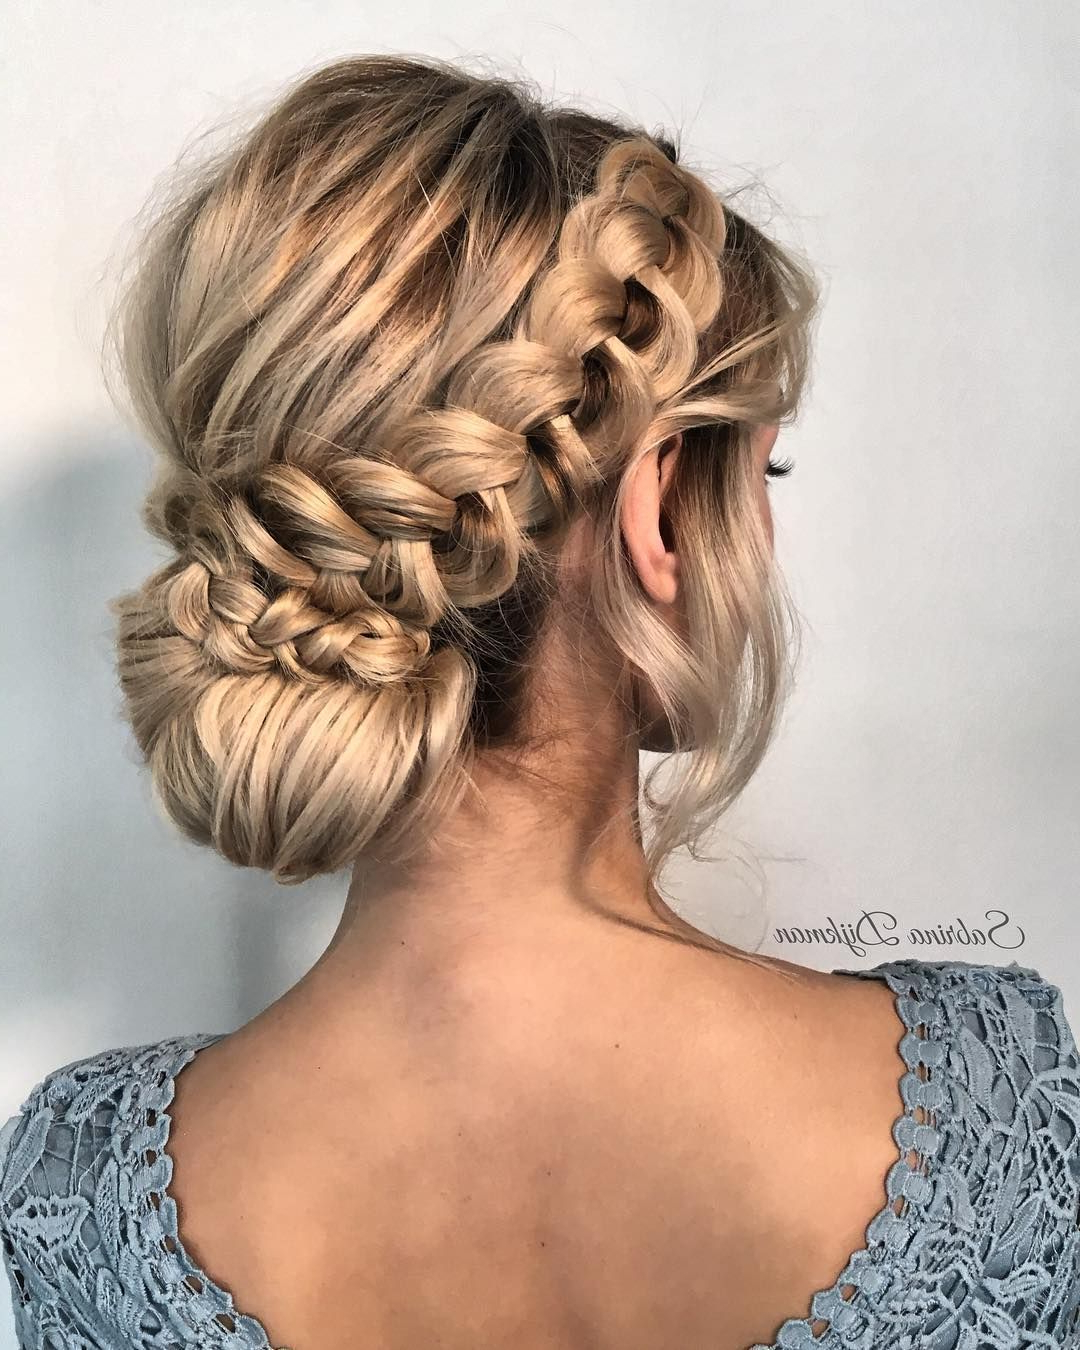 Current Messy Crown Braid Updo Hairstyles For Beautiful Wedding Braided Updo Hairstyle ,messy Updo Wedding (View 8 of 20)